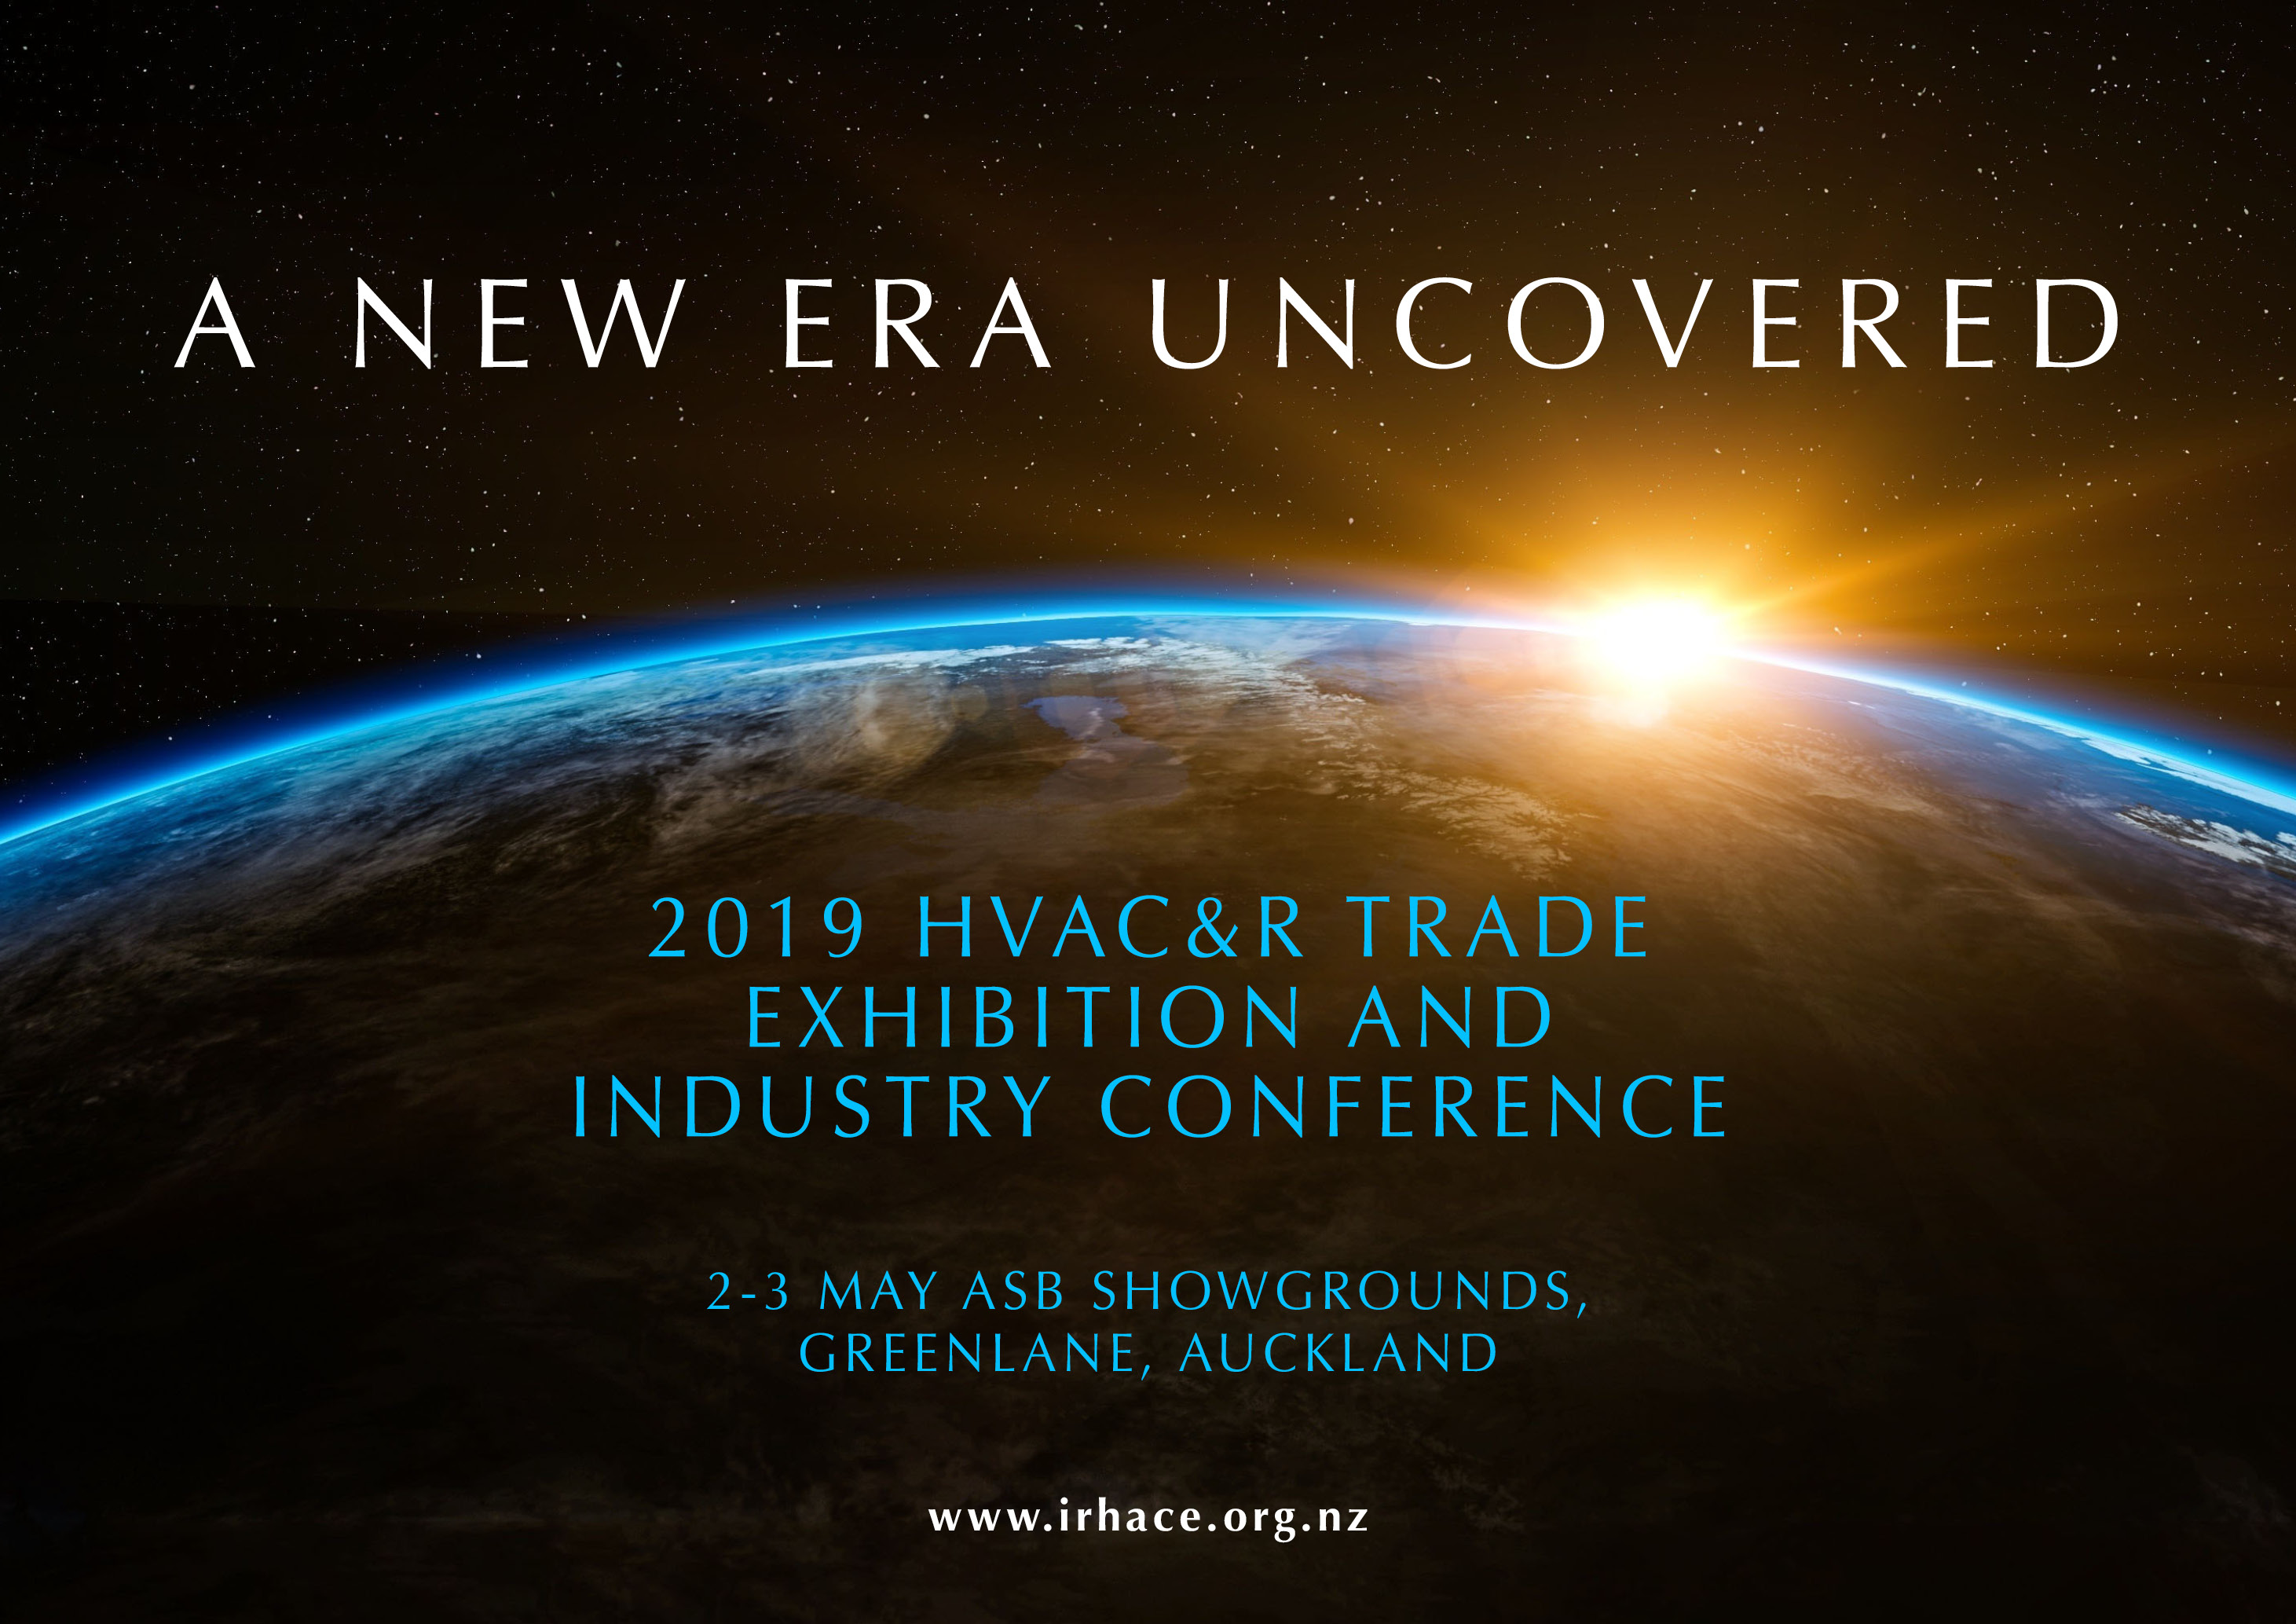 Revised_A_NEW_ERA_UNCOVERED_V2_conference _2019_promo